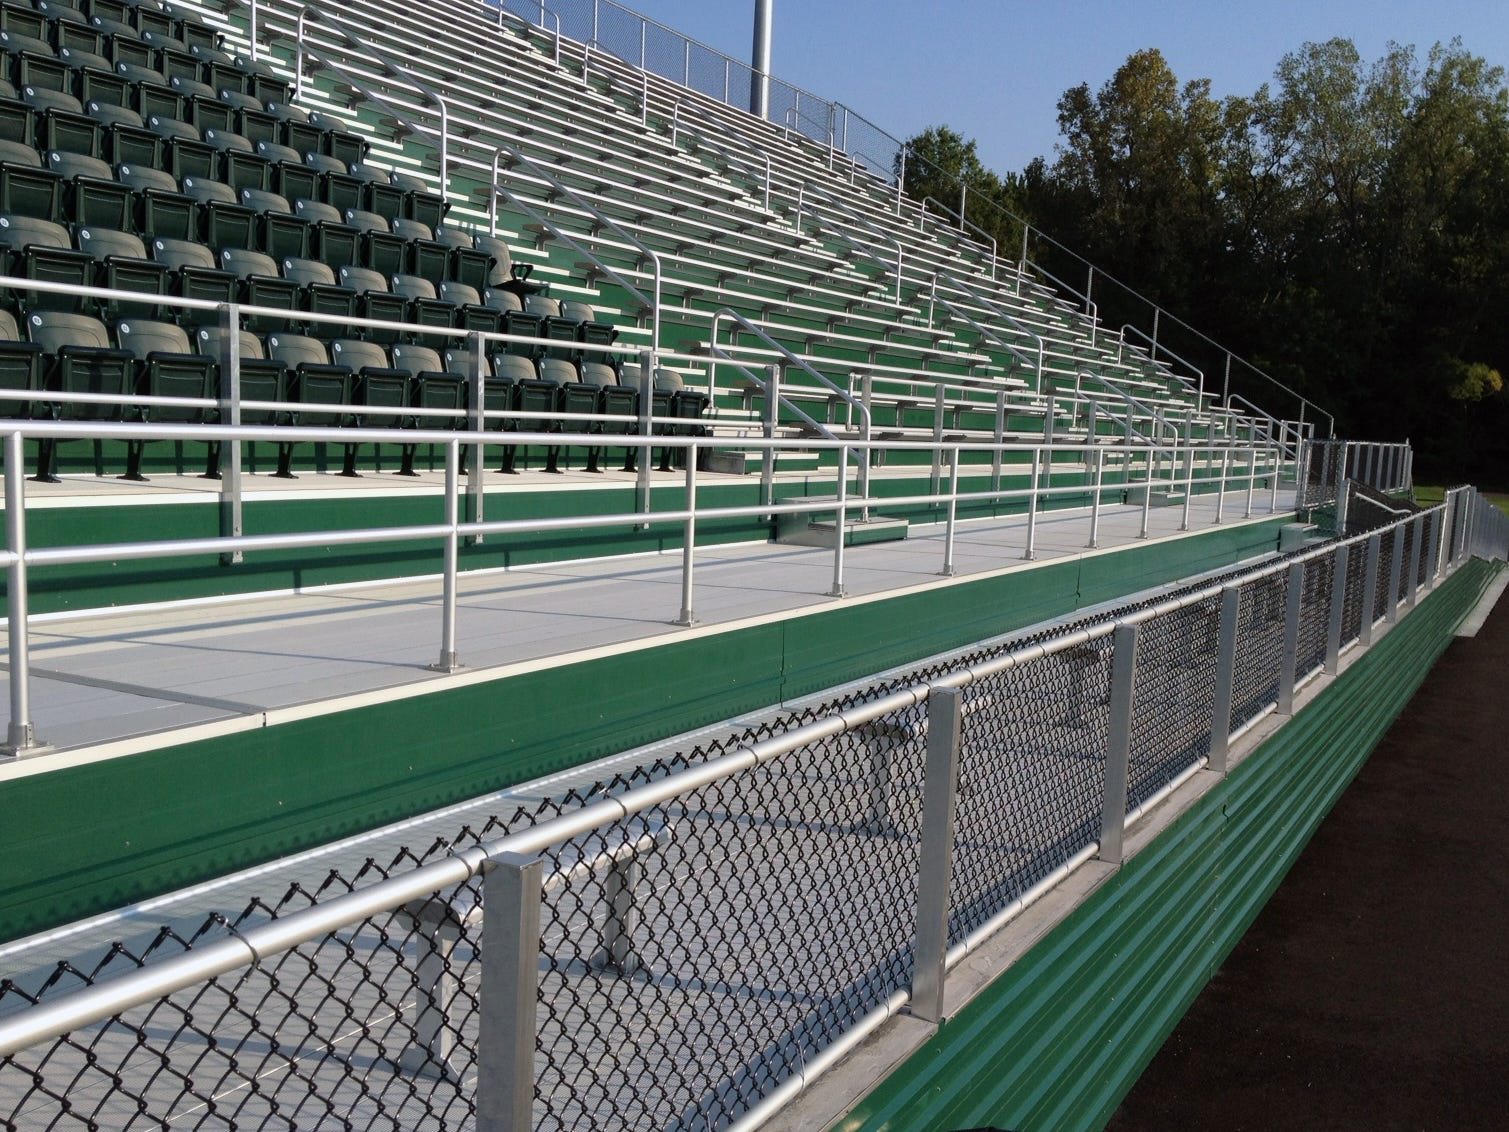 Bleachers similar to these installed in Mayfield, Ohio, will replace 50-year-old bleachers on the home side at Fairfield High School's stadium.